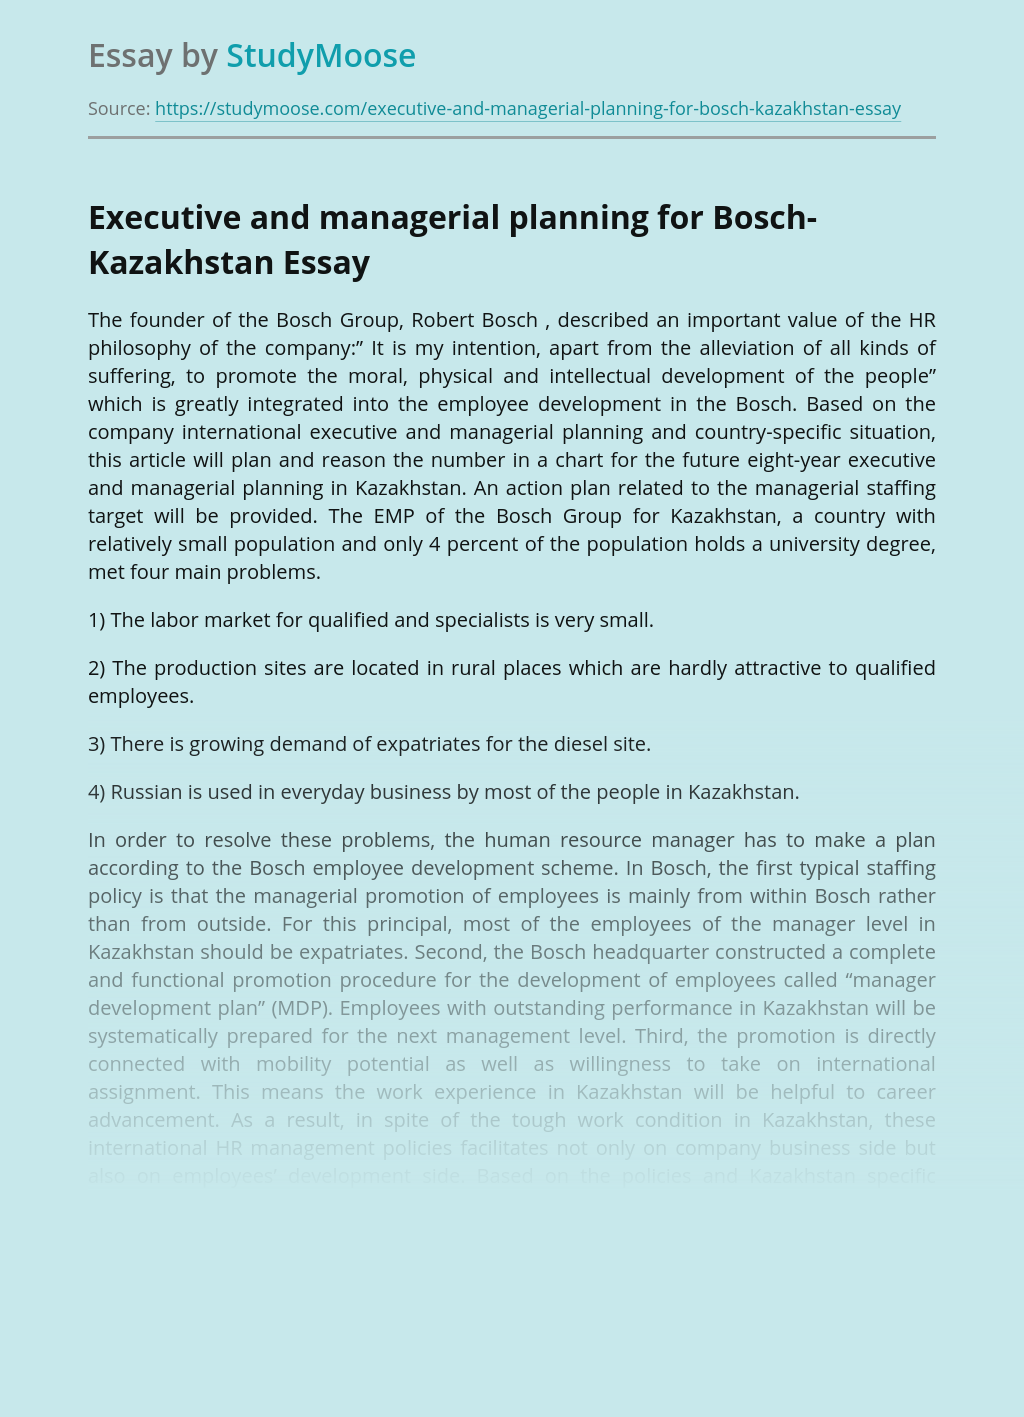 Management and Executive Planning for Bosch-Kazakhstan